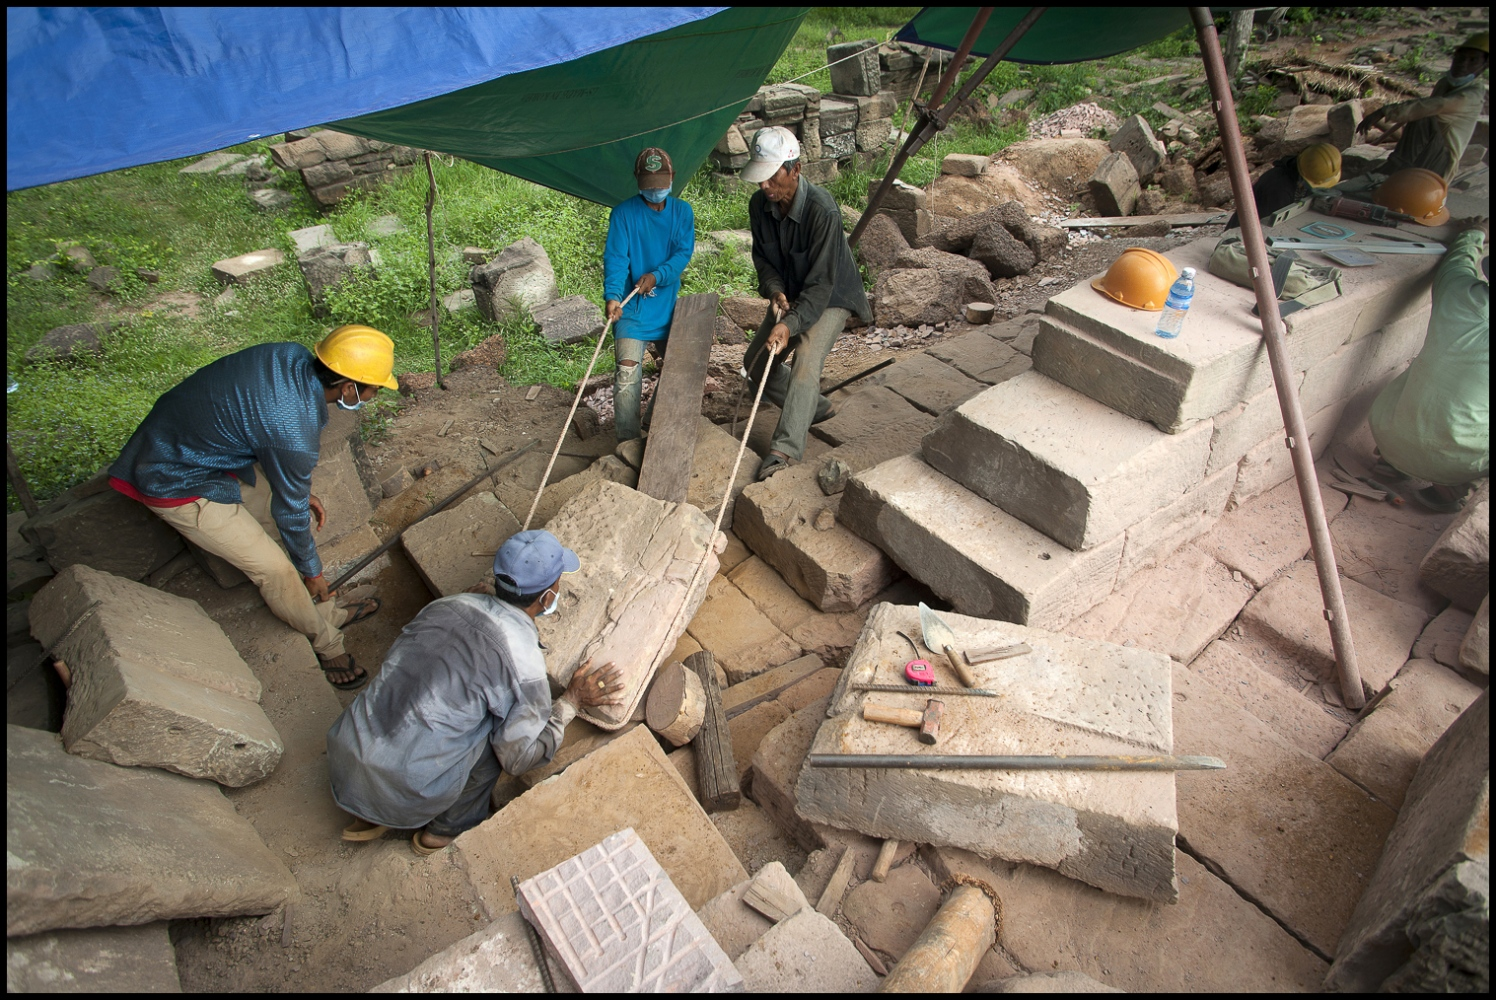 Khmer stone masons replacing the stone work to the Banteay Chhmar Temple in Cambodia. Built by Khmer King Jayavarman 7th (1181-1219). they have spent the last 3 years painstakingly dismatling and rebuilding this 20 metre section of the temple ruins at Banteay Chhmar.